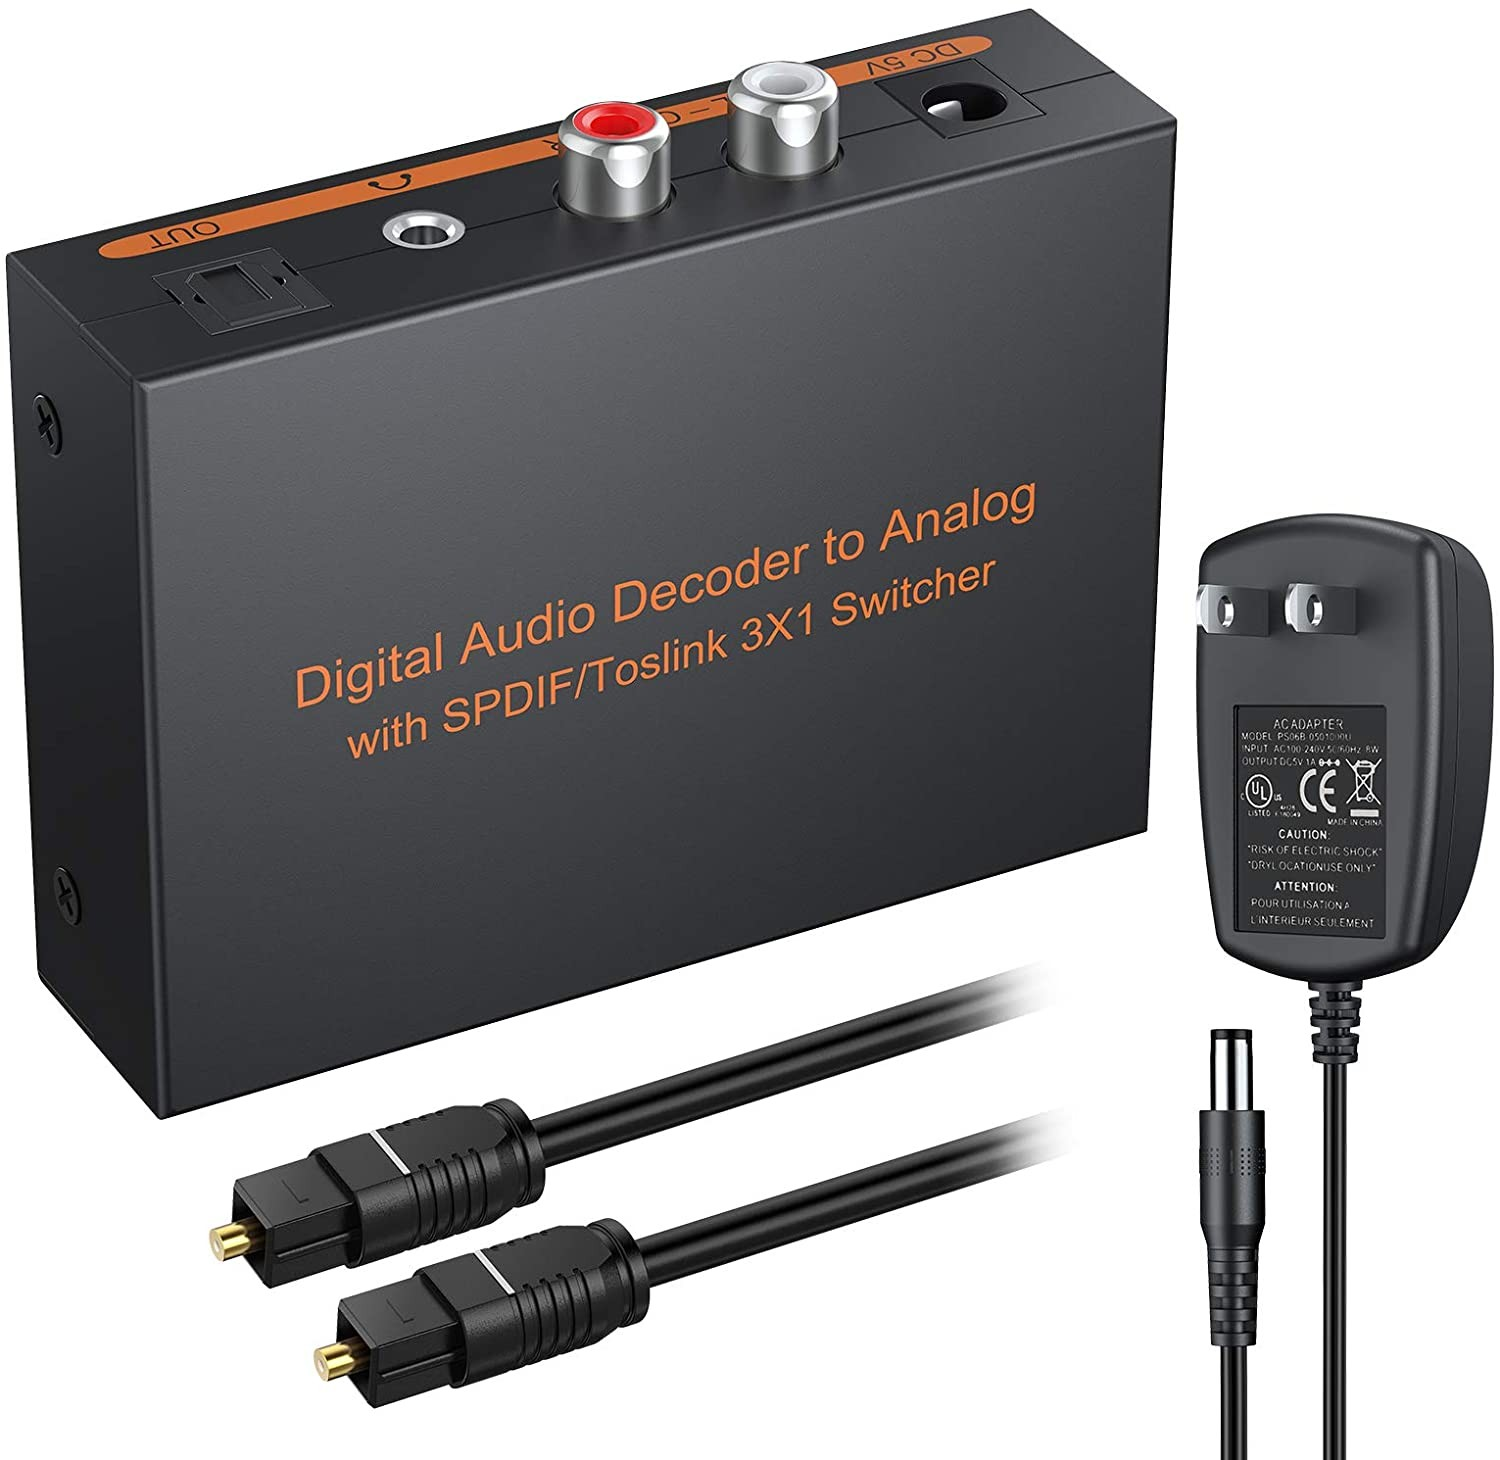 Hdmi to Rca Converter Wiring Diagram Esynic Digital to Analog Audio Decoder 3 Port Optical Spdif toslink to L R Rca 3 5mm Stereo Audio with toslink Optical Switcher Splitter with 6 5ft Od Of Hdmi to Rca Converter Wiring Diagram